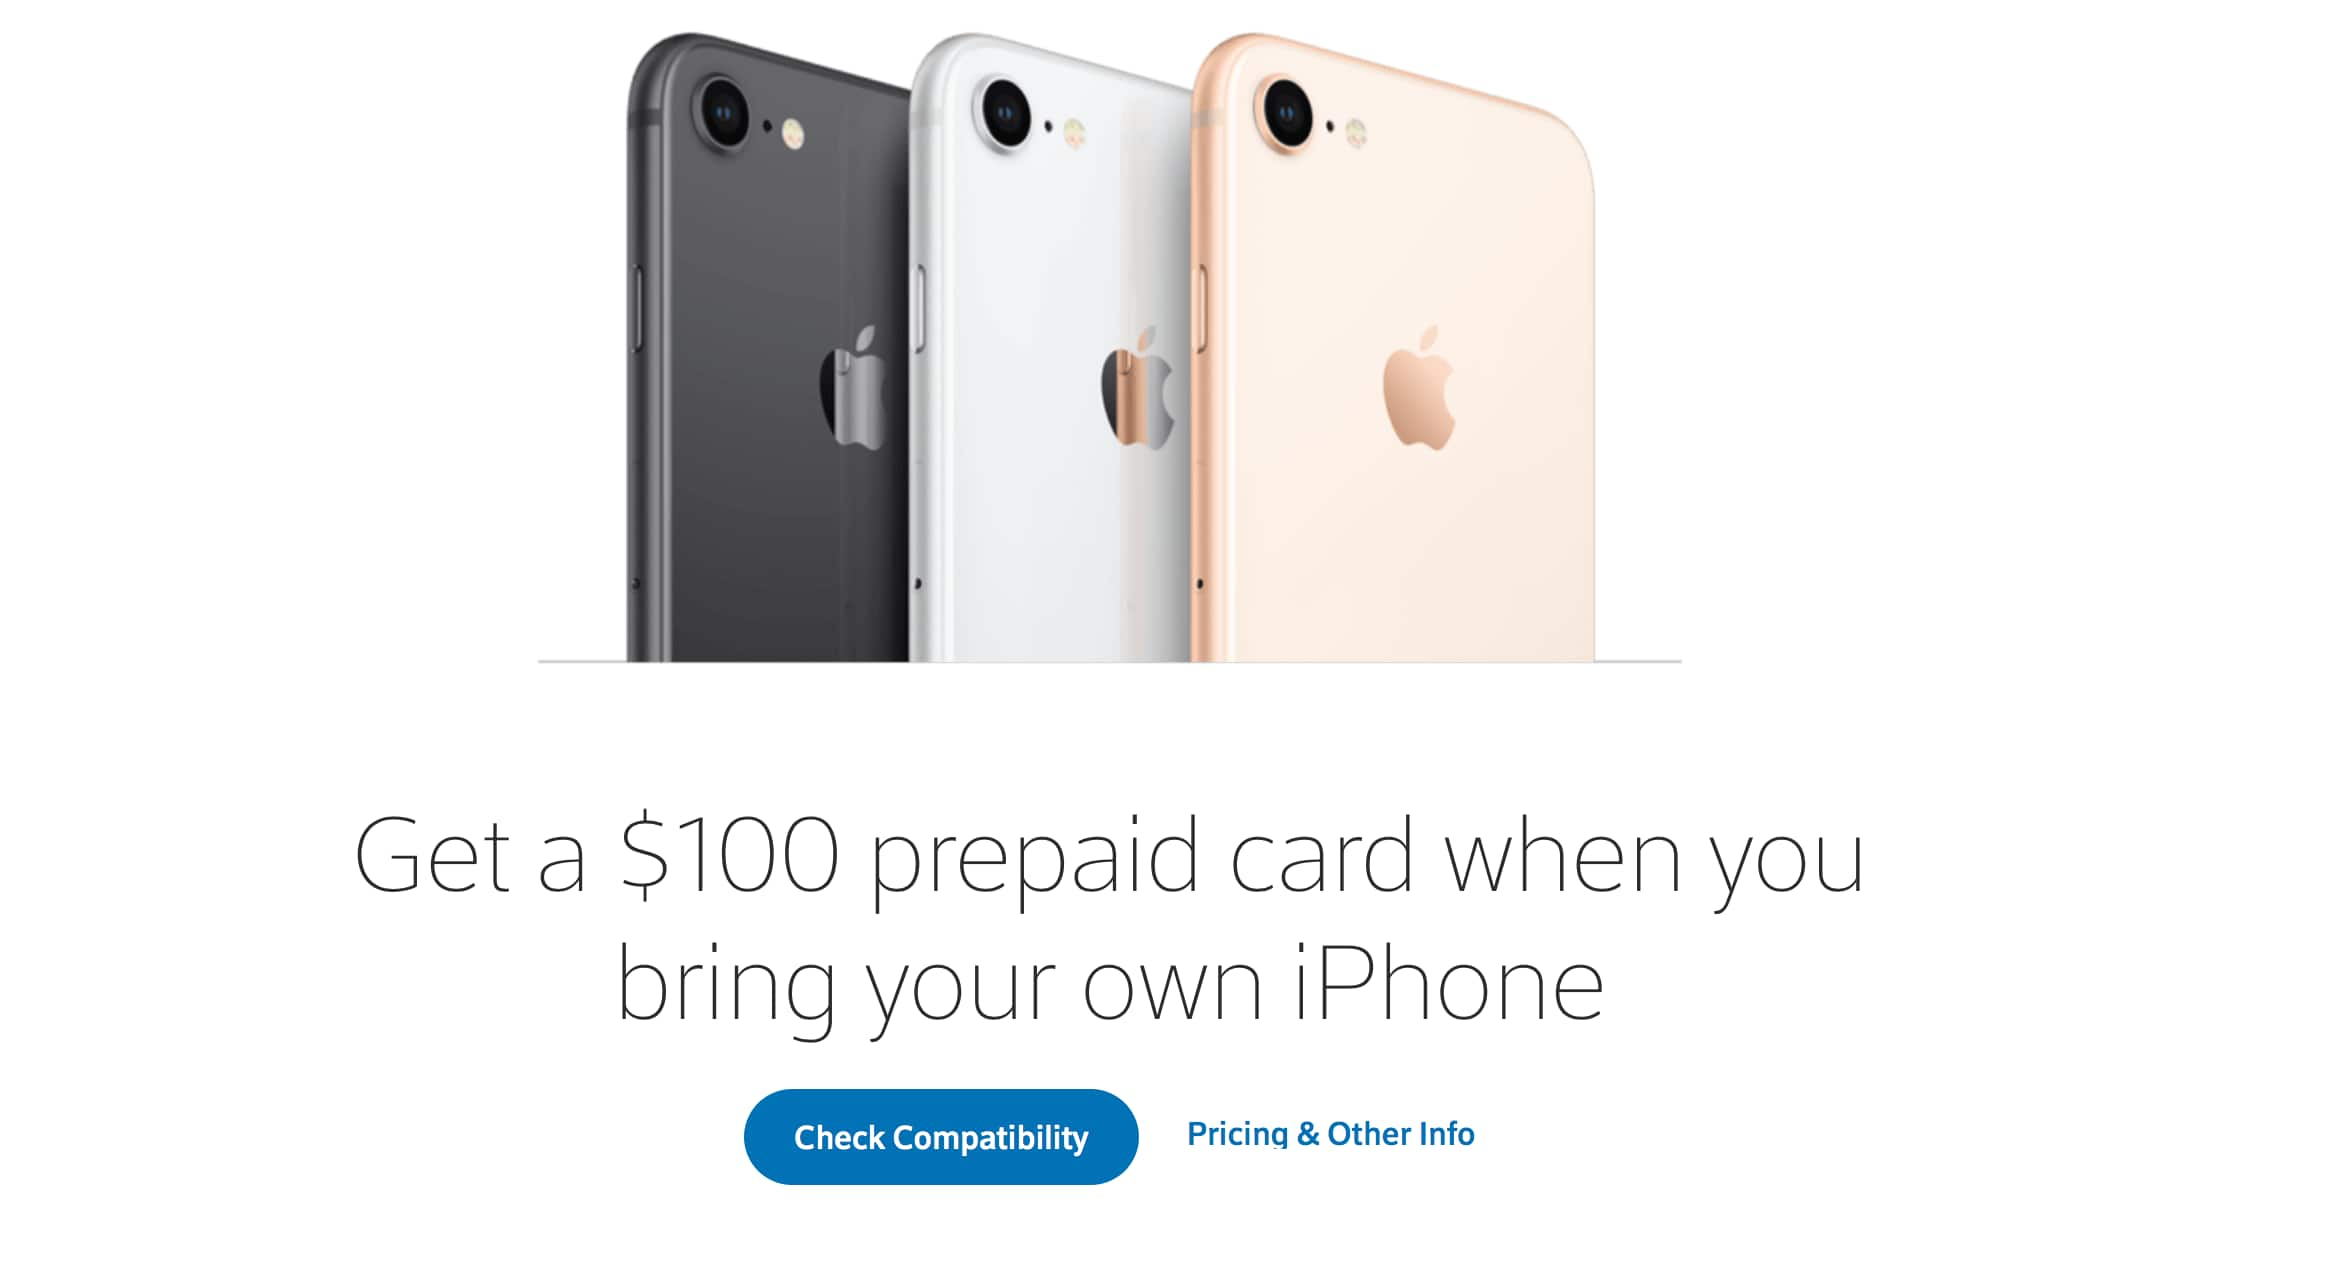 Xfinity Mobile BYOD is back with $100 Prepaid card after 90 days